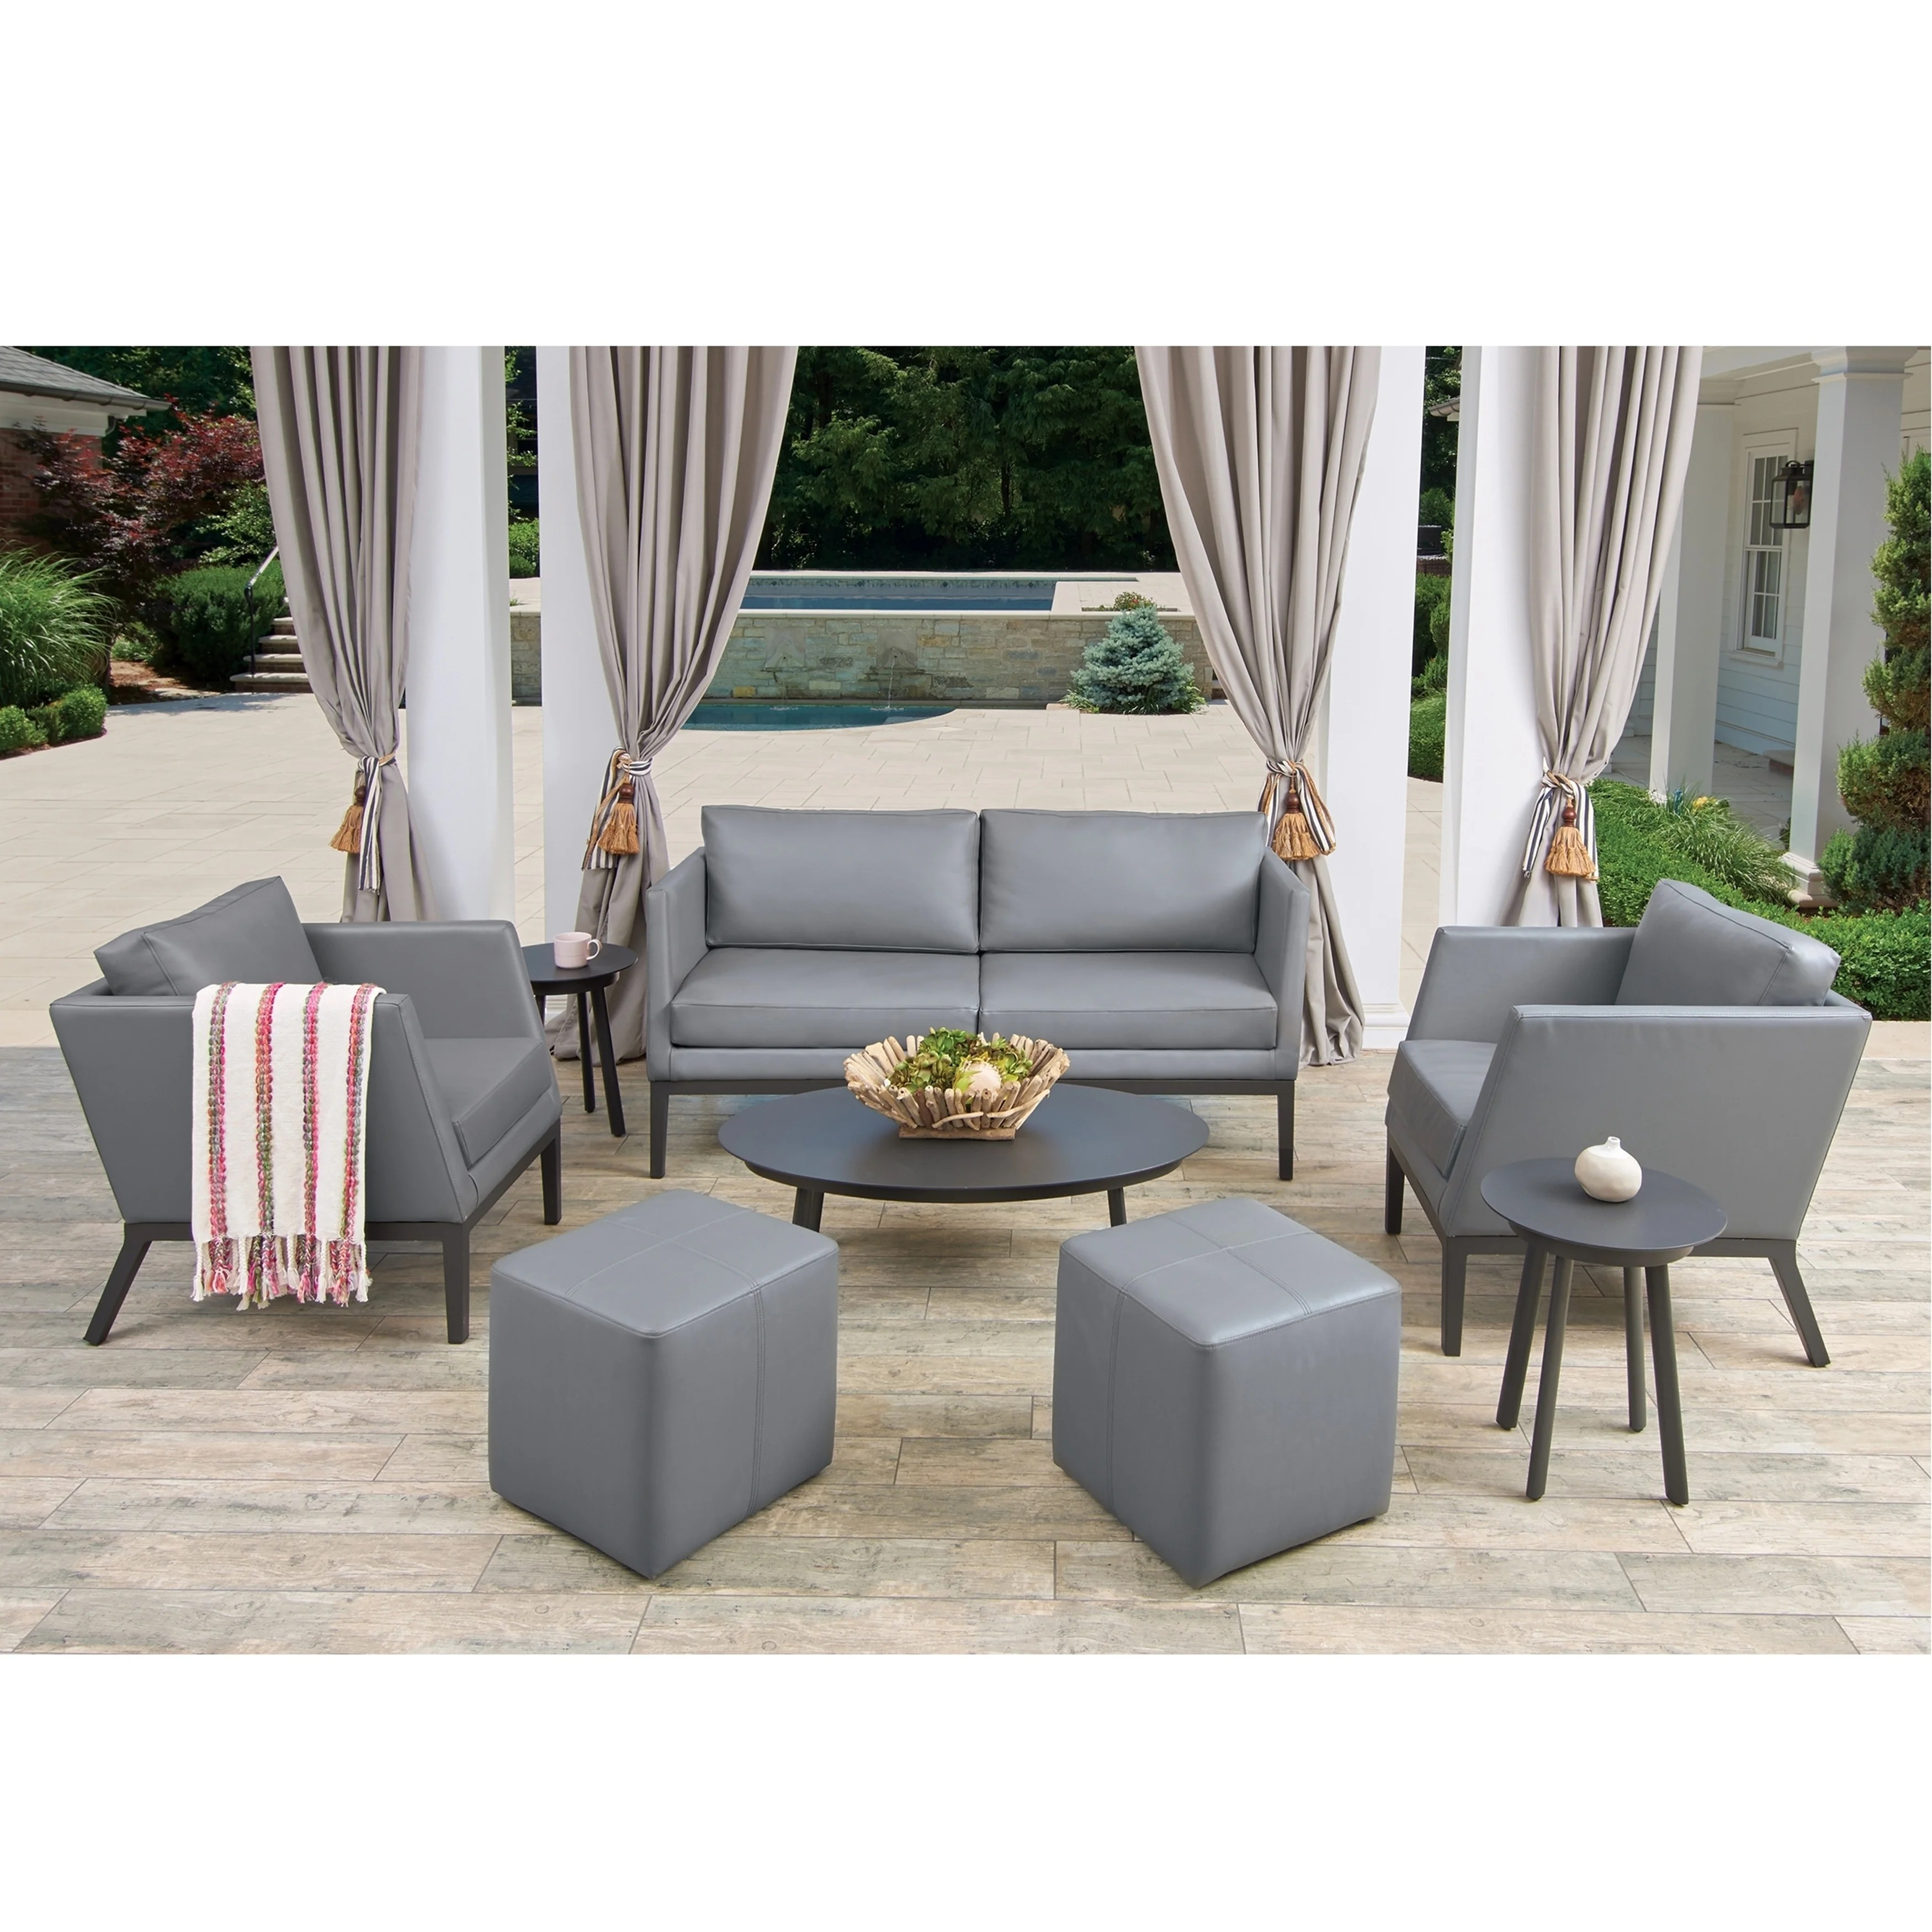 Chairs With Ottoman Oxford Garden Salino 8 Piece Nickel Nauticau Synthetic Leather Sofa Club Chairs Ottoman Poufs And Eiland Tables Chat Set